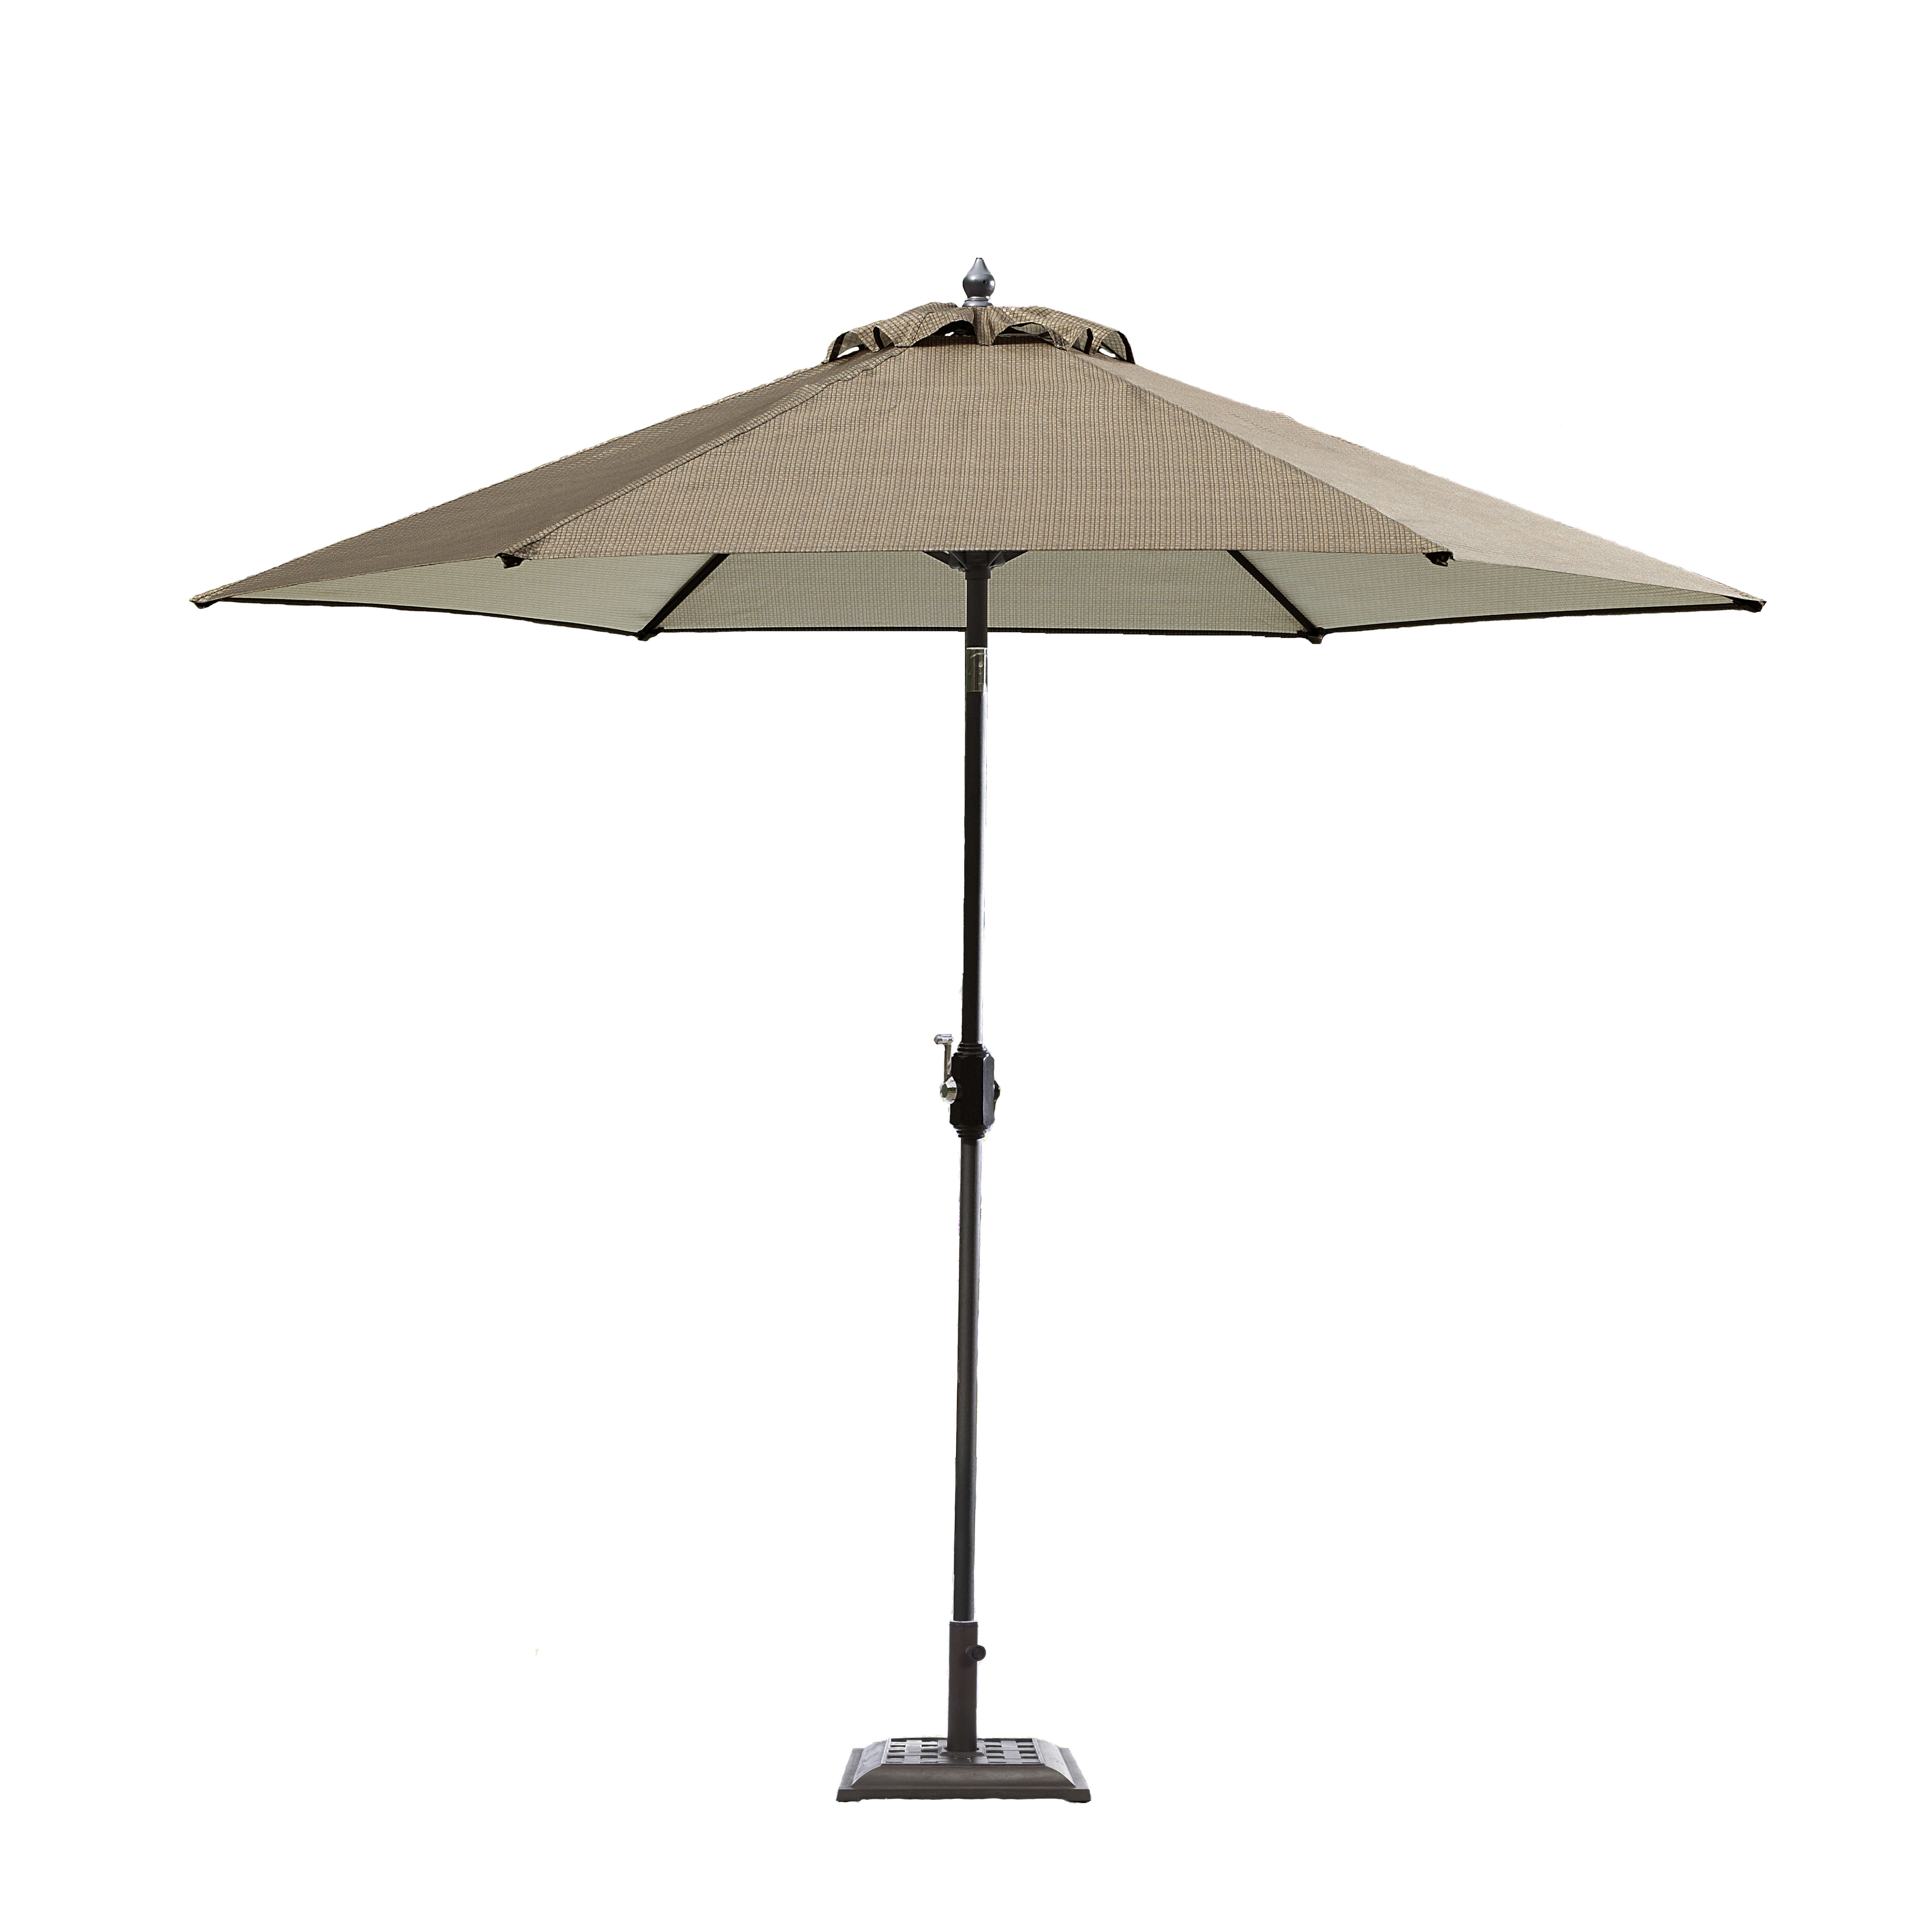 Garden Oasis Harrison 9u0027 Patio Umbrella In Brown   Sears